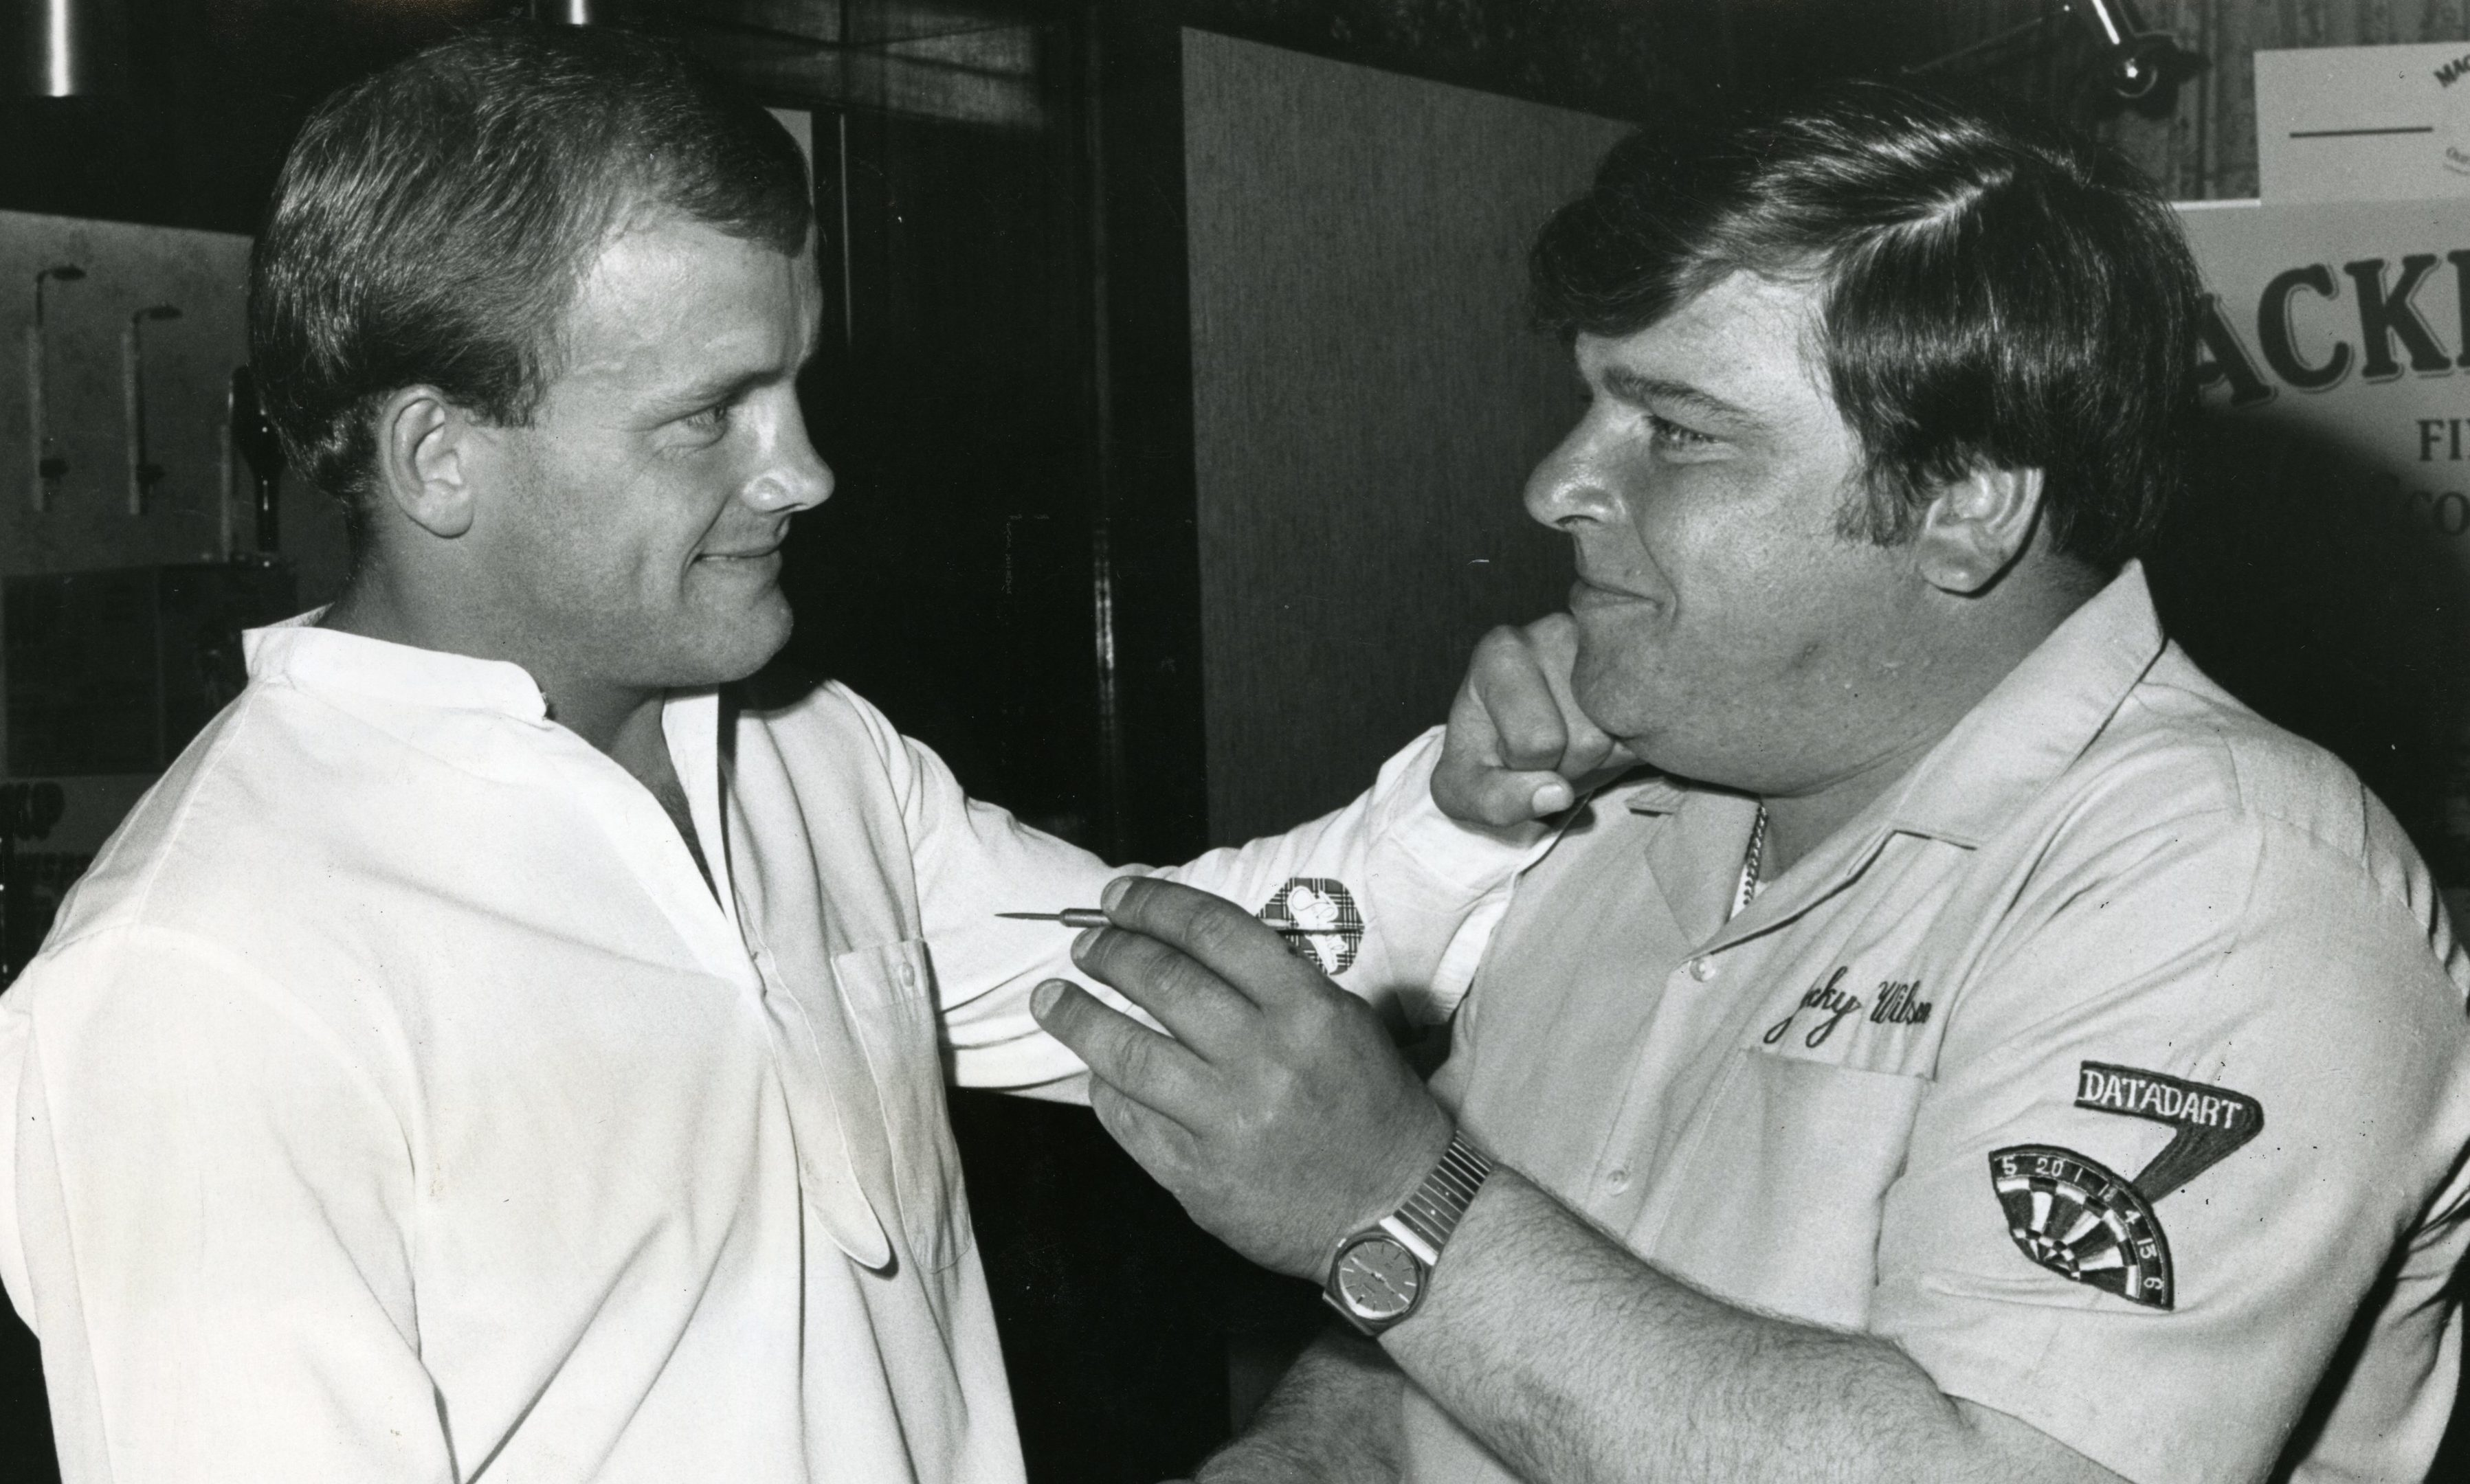 Jocky Wilson right) and George Kerr posing together at a charity darts exhibition held in the Angus Hotel in Dundee in 1984.